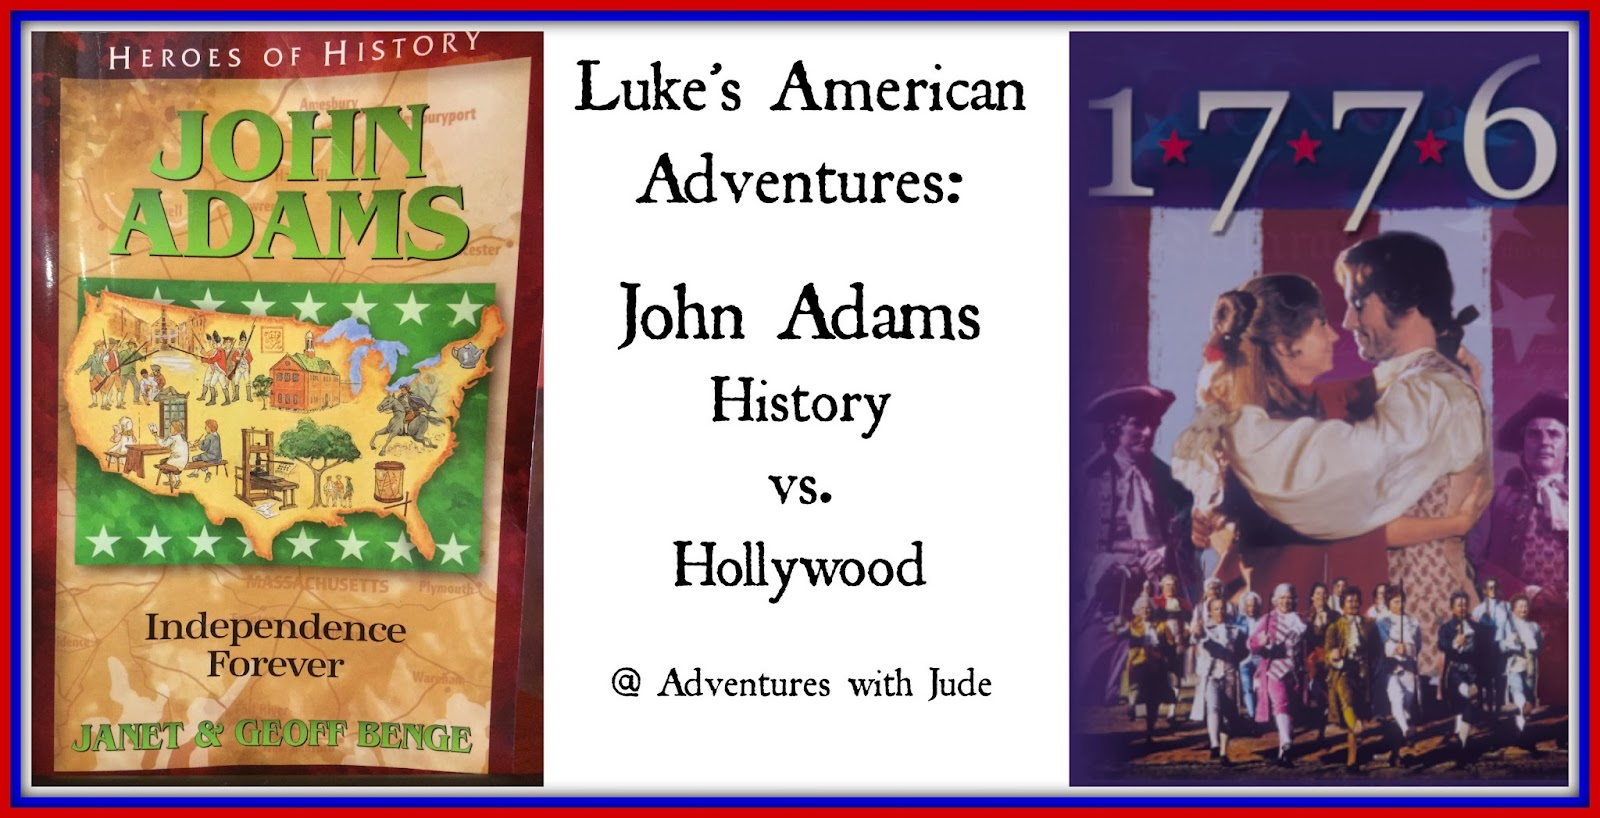 John Adams: History versus Hollywood